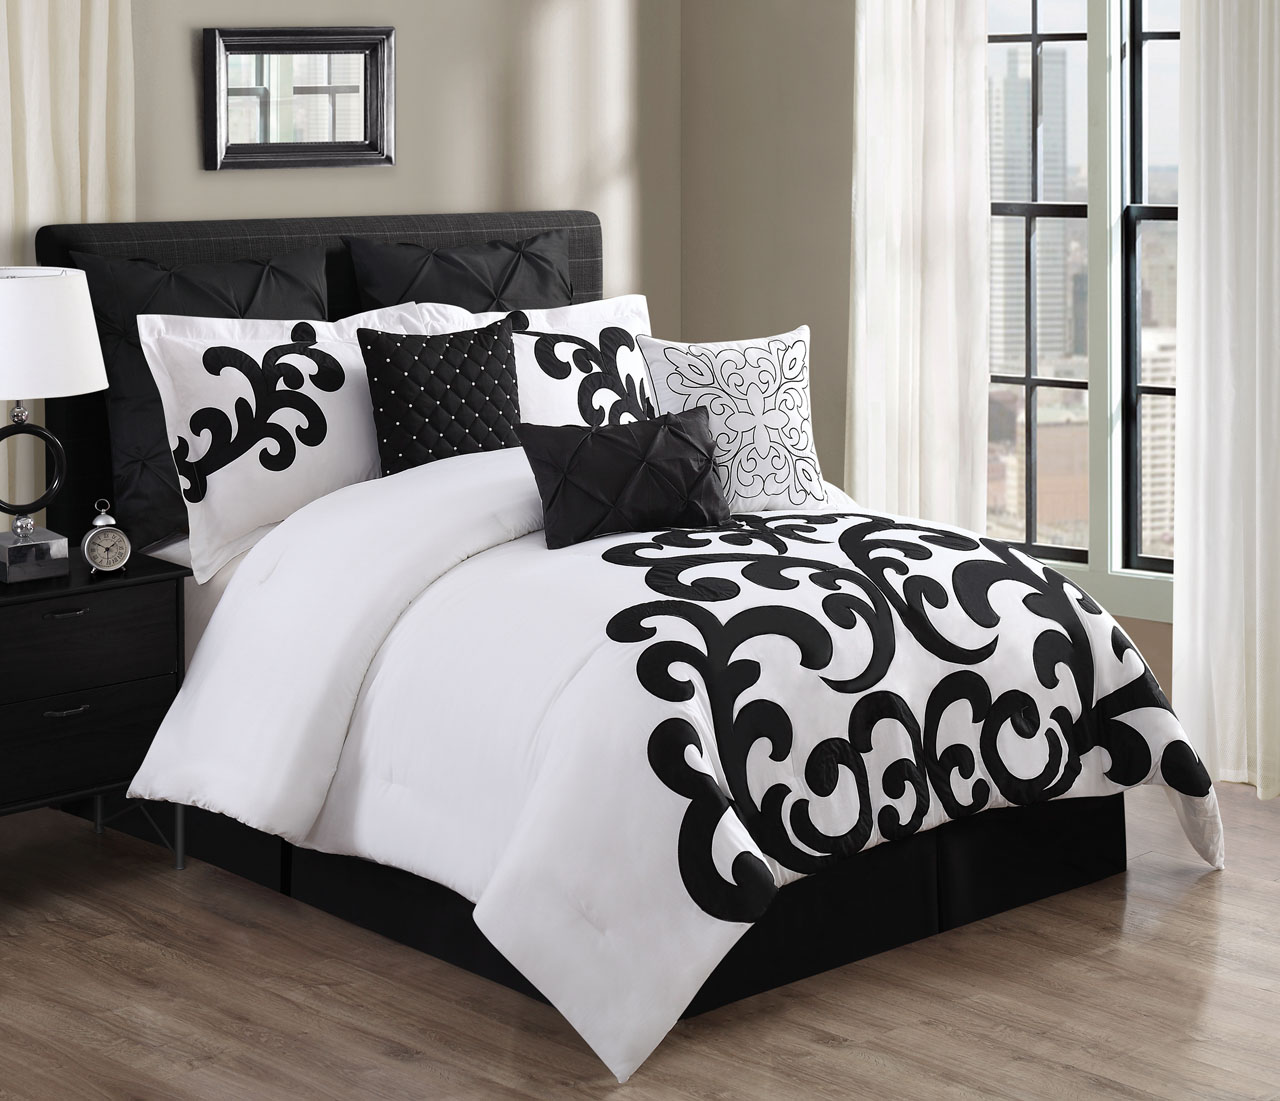 Image of: Black And White Comforter Full Size